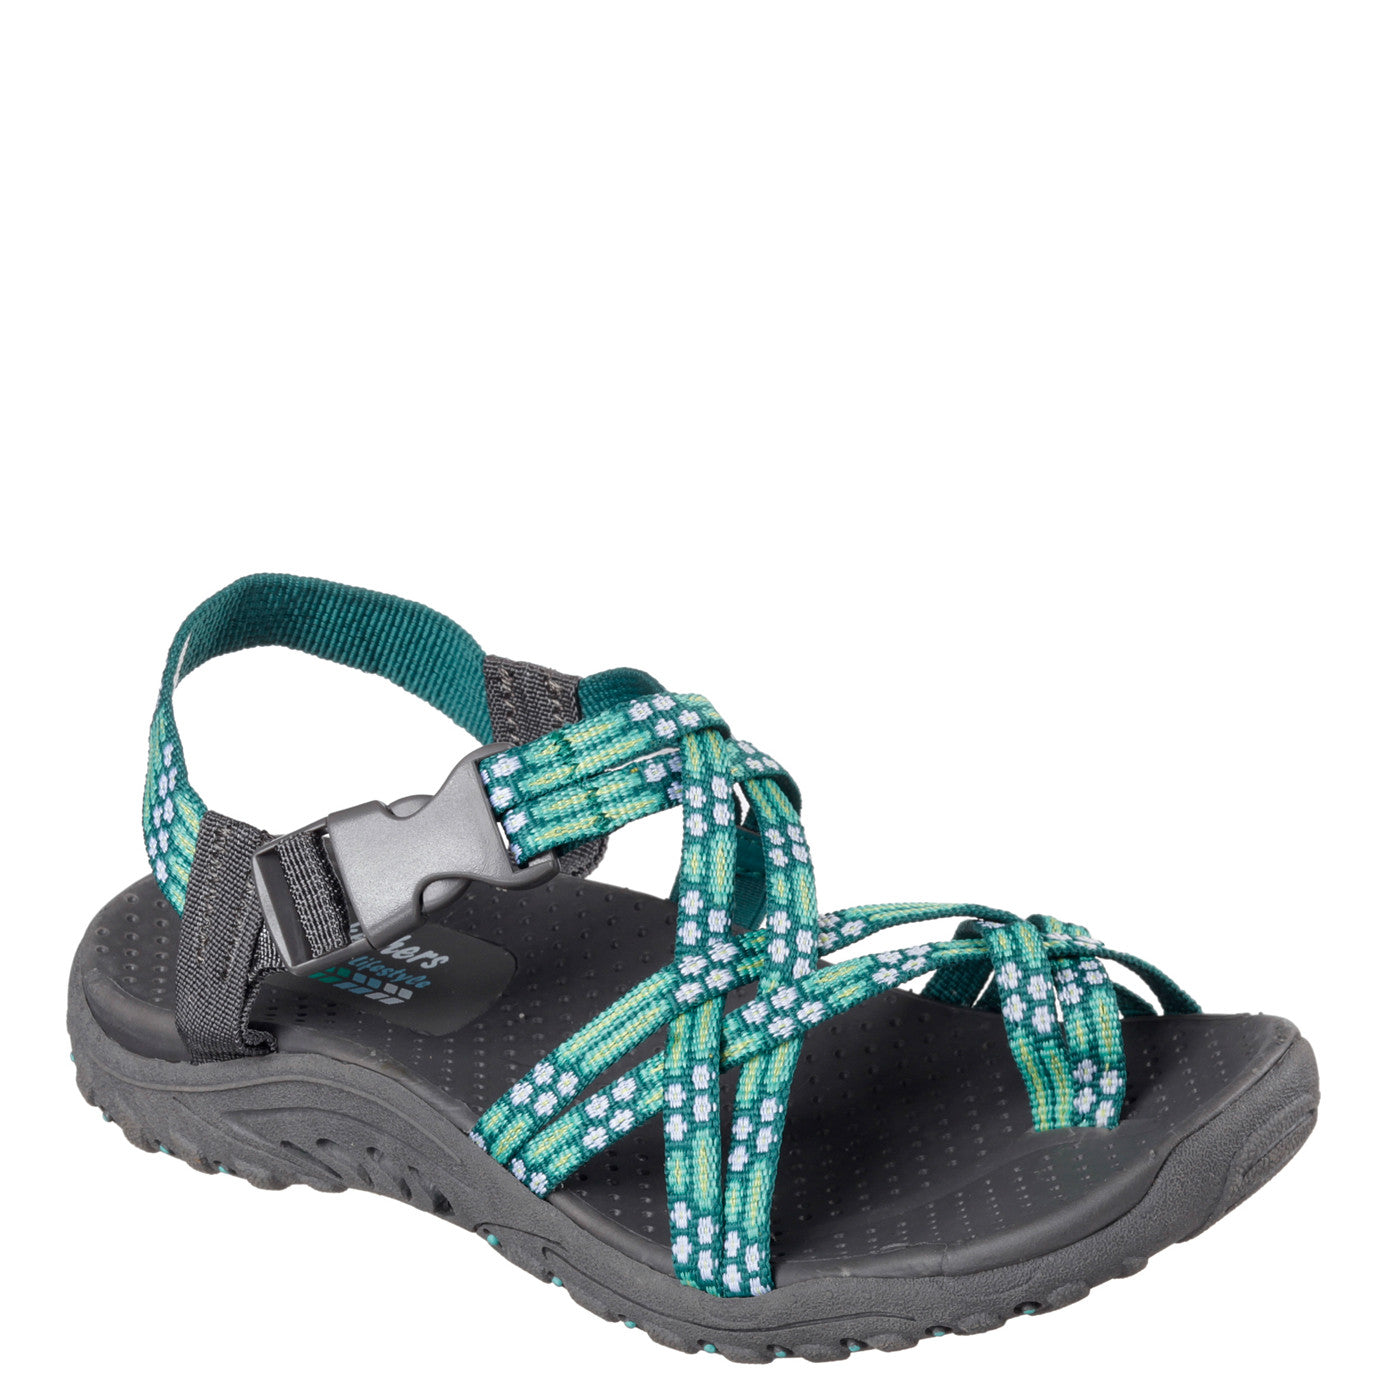 Skechers Women's Reggae Loopy Sandal - Mint 40875 ...